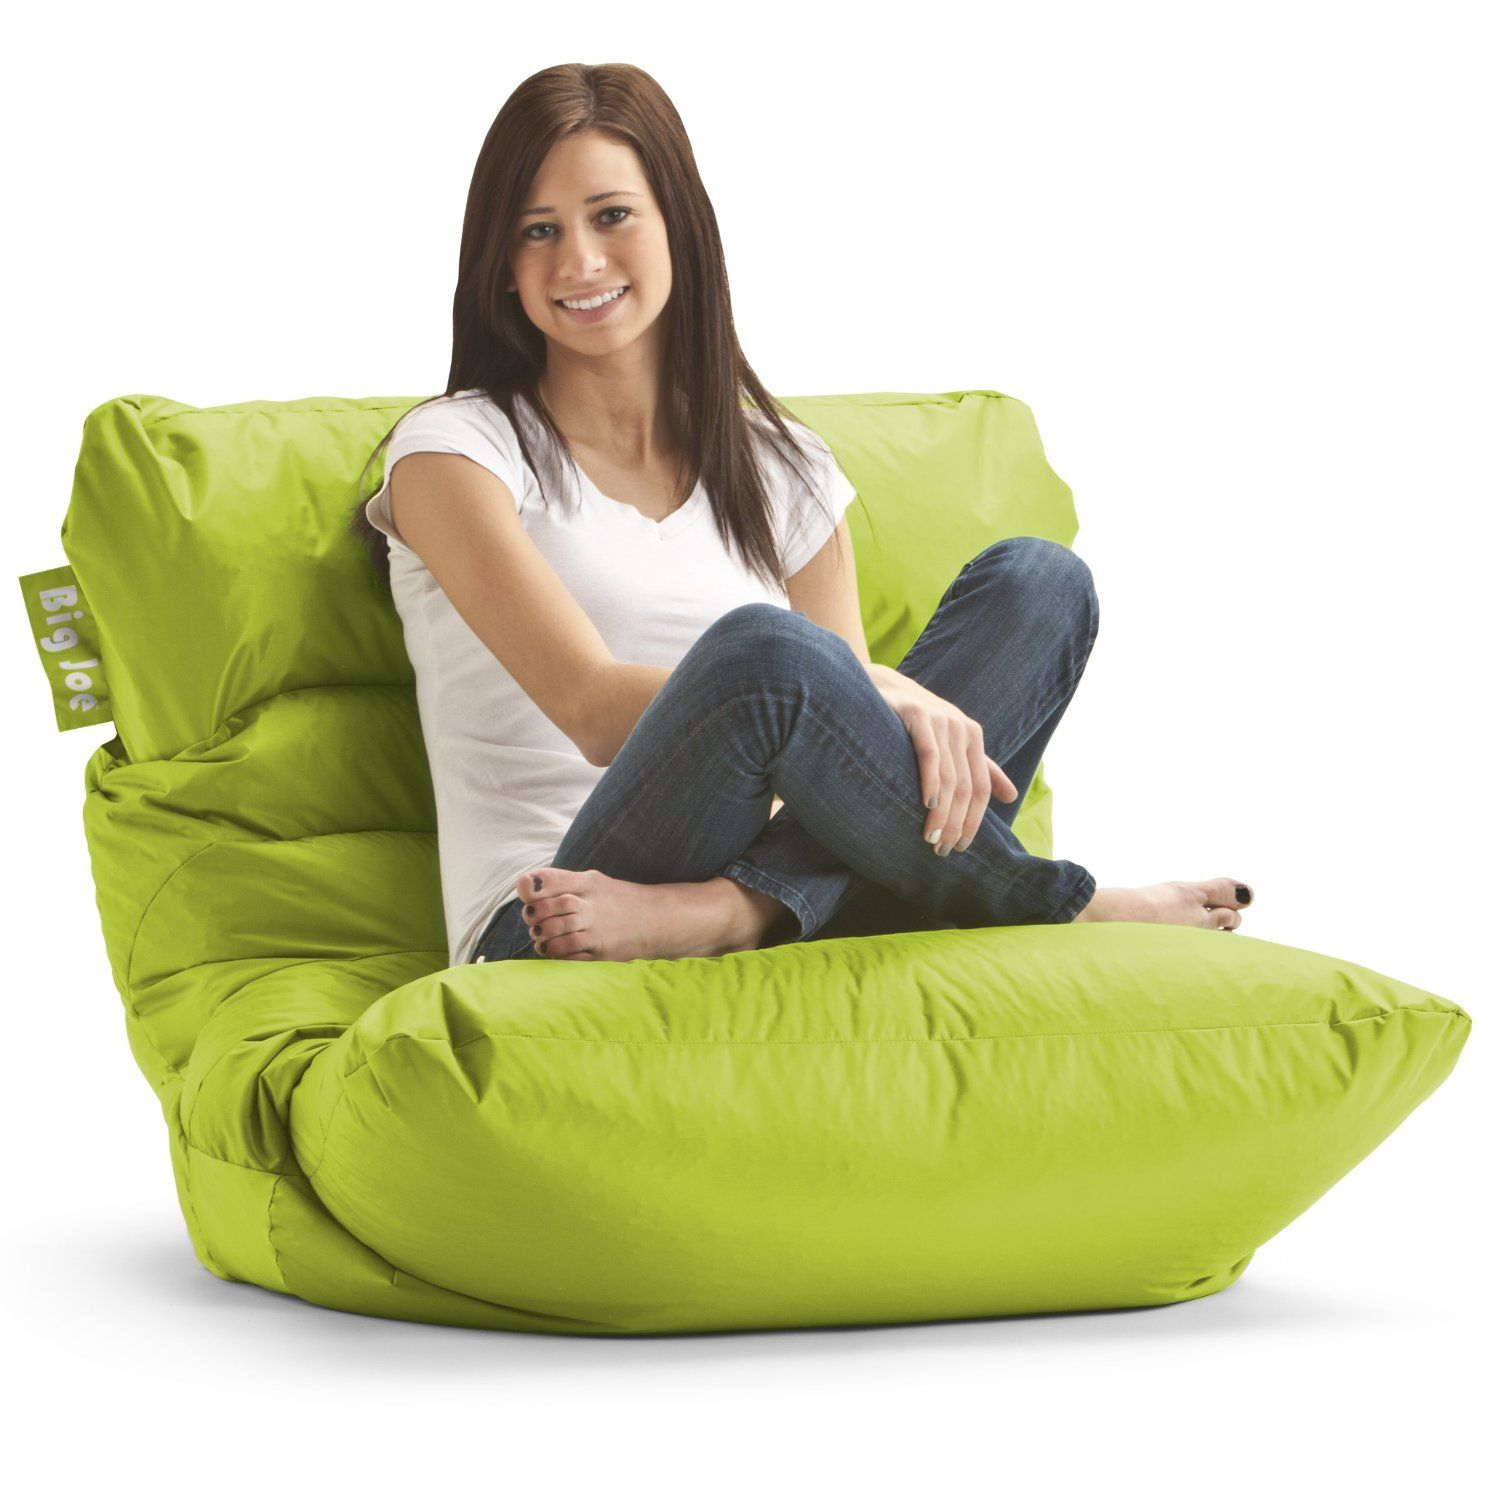 Charmant Amazon.com   Big Joe Roma Bean Bag Chair, Spicy Lime   Beanbag Chairs For  Teens